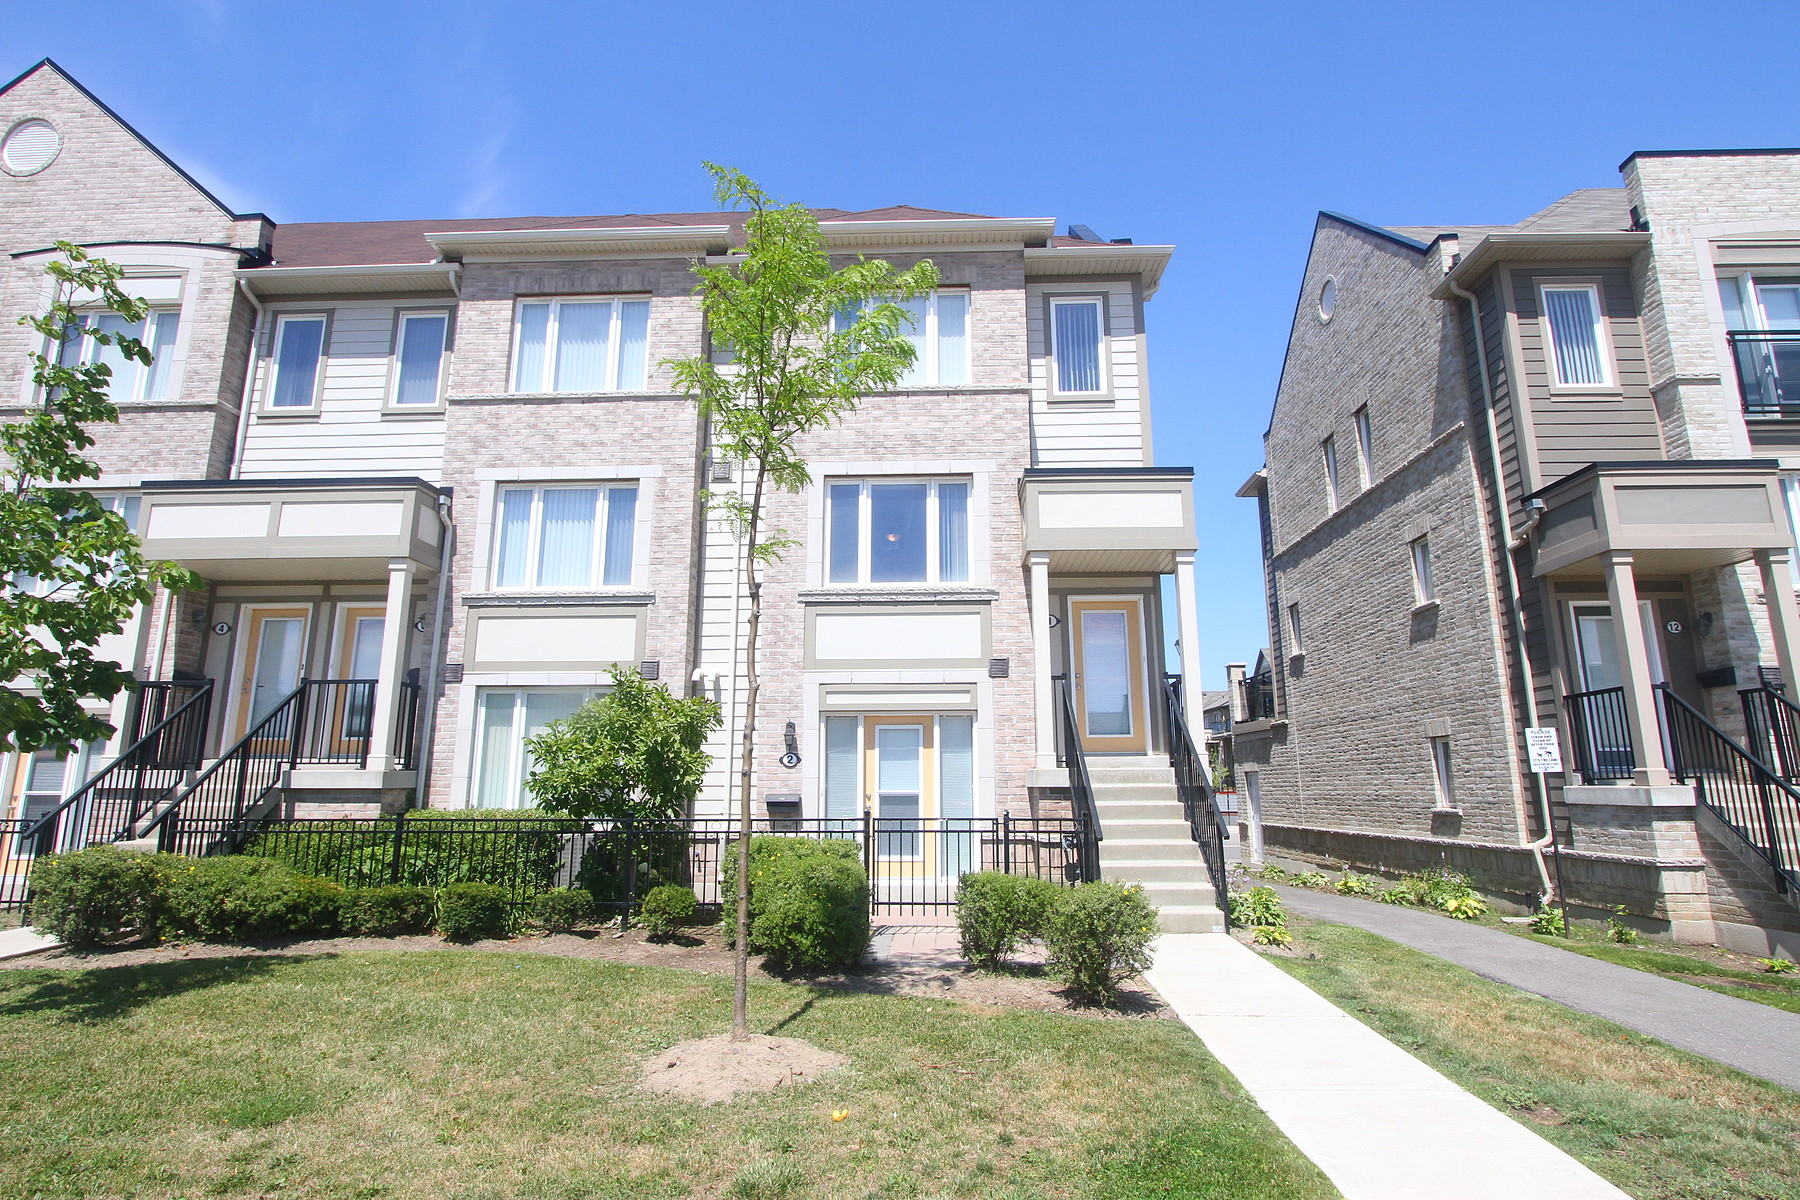 Townhouse for Sale at Beautiful Townhouse 2935 Hazelton Pl Th-01 Mississauga, Ontario, L5M0S3 Canada